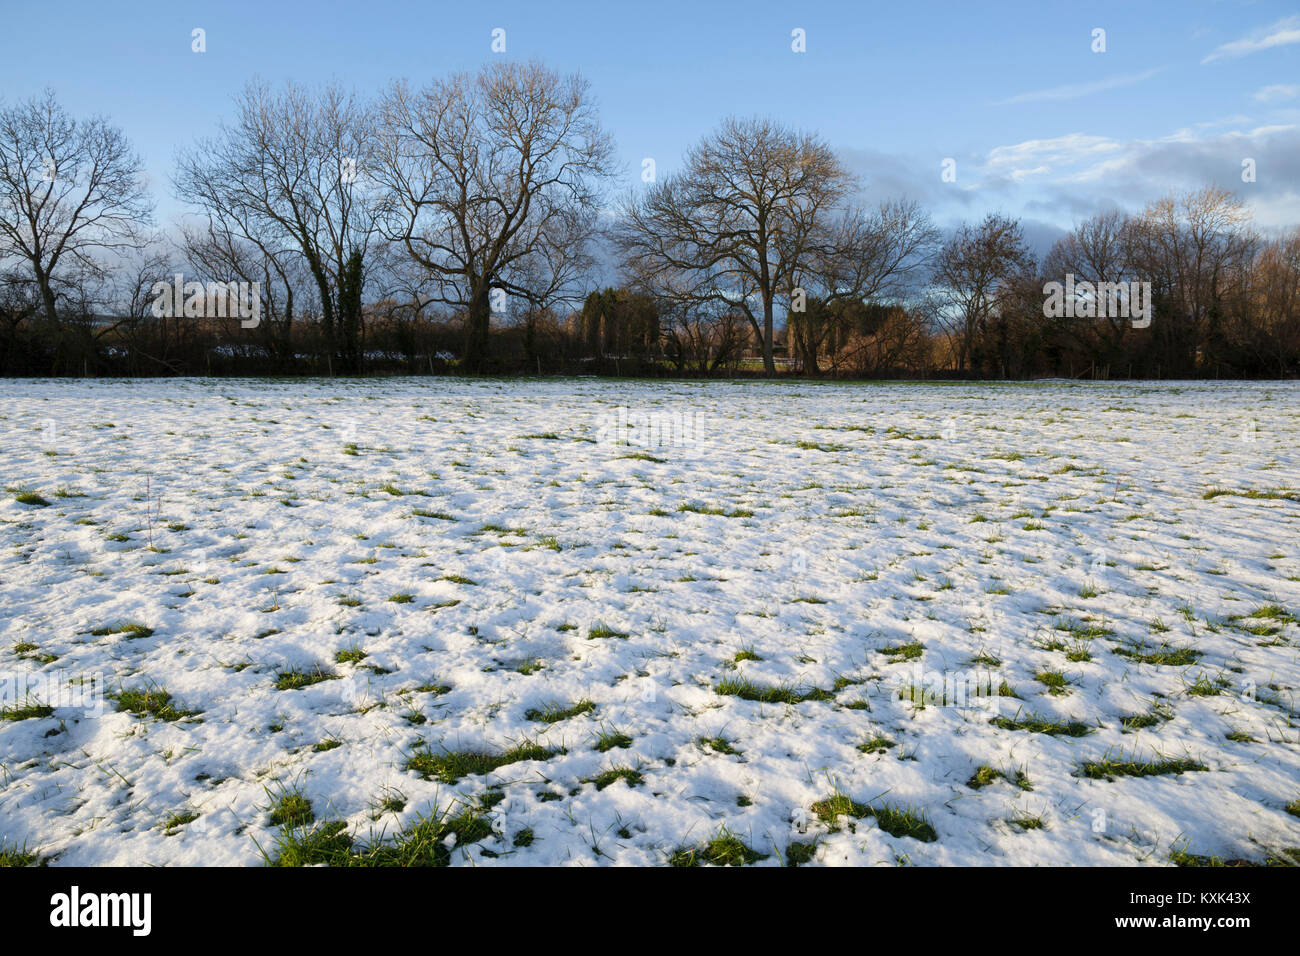 Melting snow with green grass patches poking through and bare winter trees behind, Ebrington, Cotswolds, Gloucestershire, - Stock Image